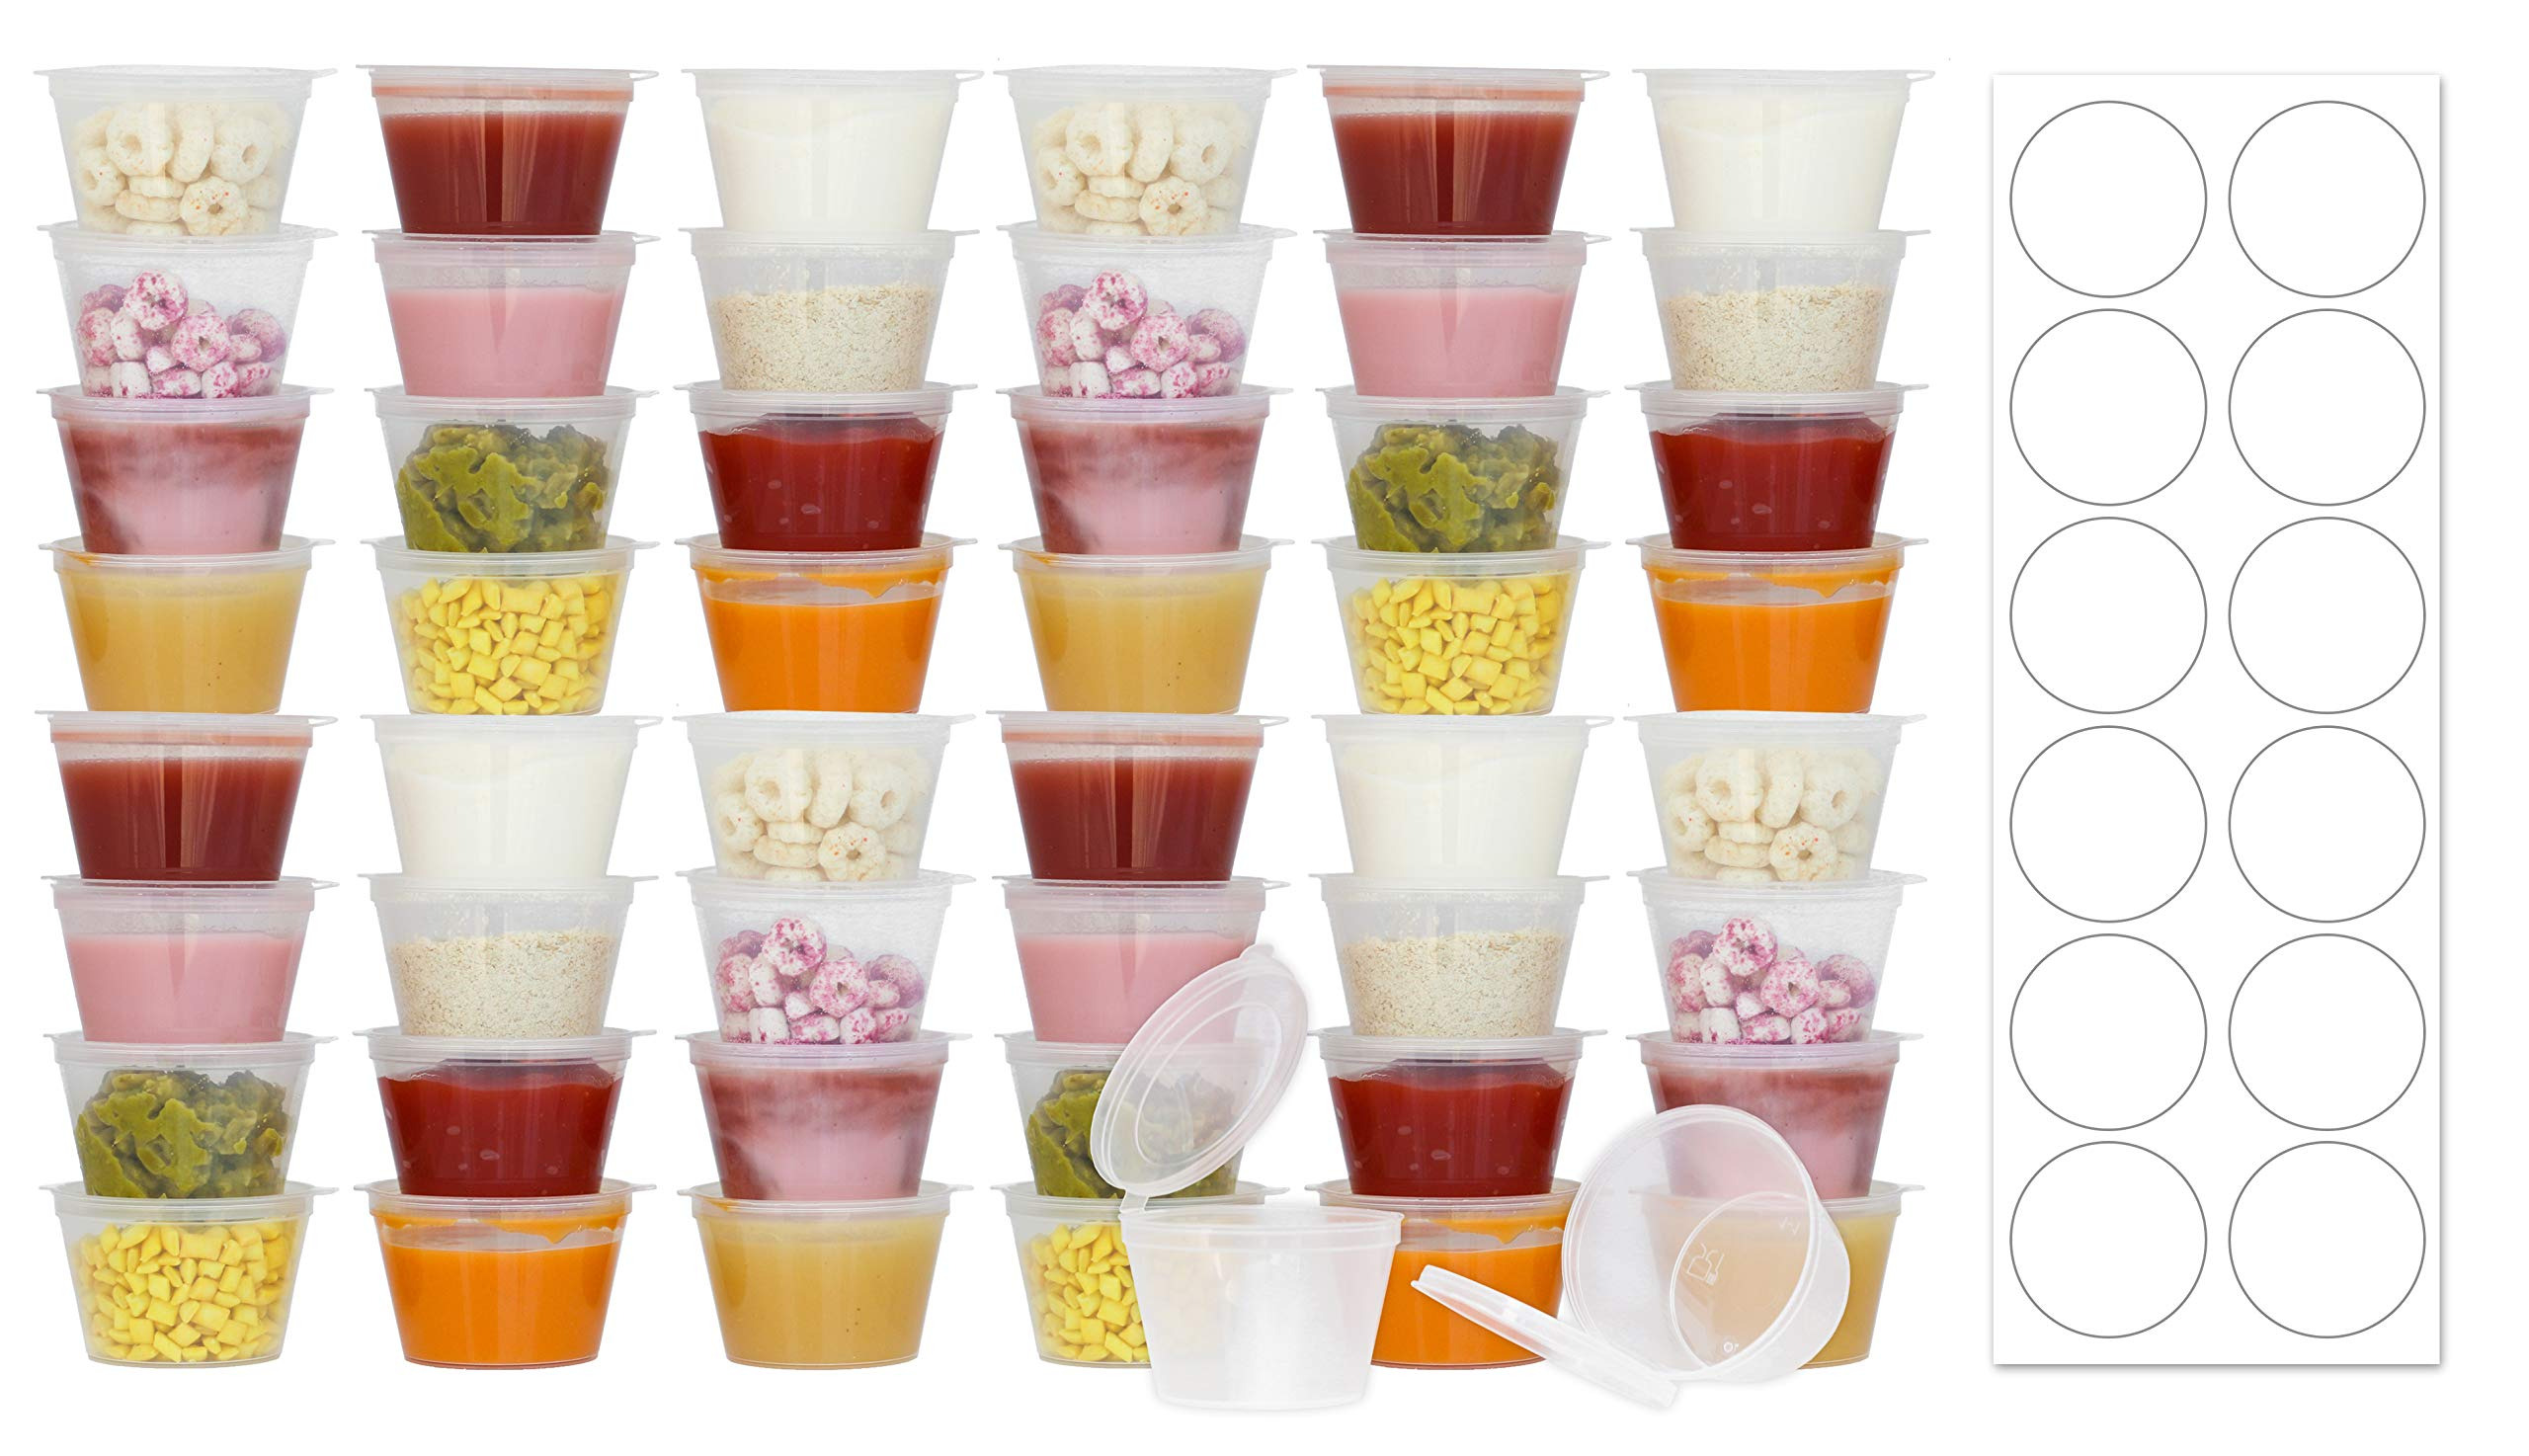 50 Pack BPA-Free Baby Food Freezer Storage Containers Hinged Lids (3 oz) Labels | Leak-Proof | Travel Snack Cups | Store Homemade, Organic Purees | Freezer Dishwasher Safe by Tovla